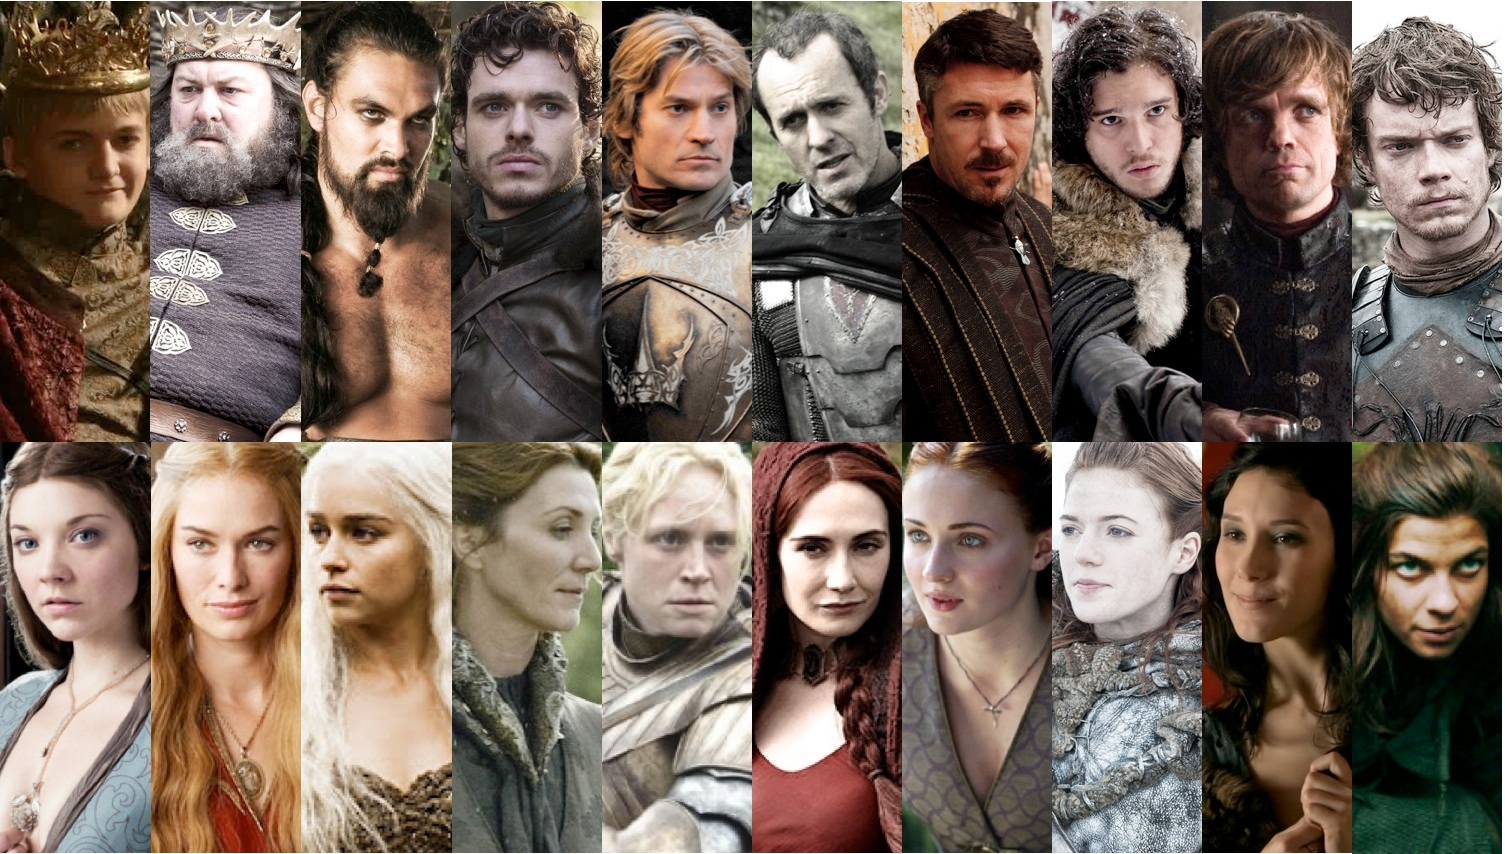 A Song of Ice and Fire contains gritty, intense characters.